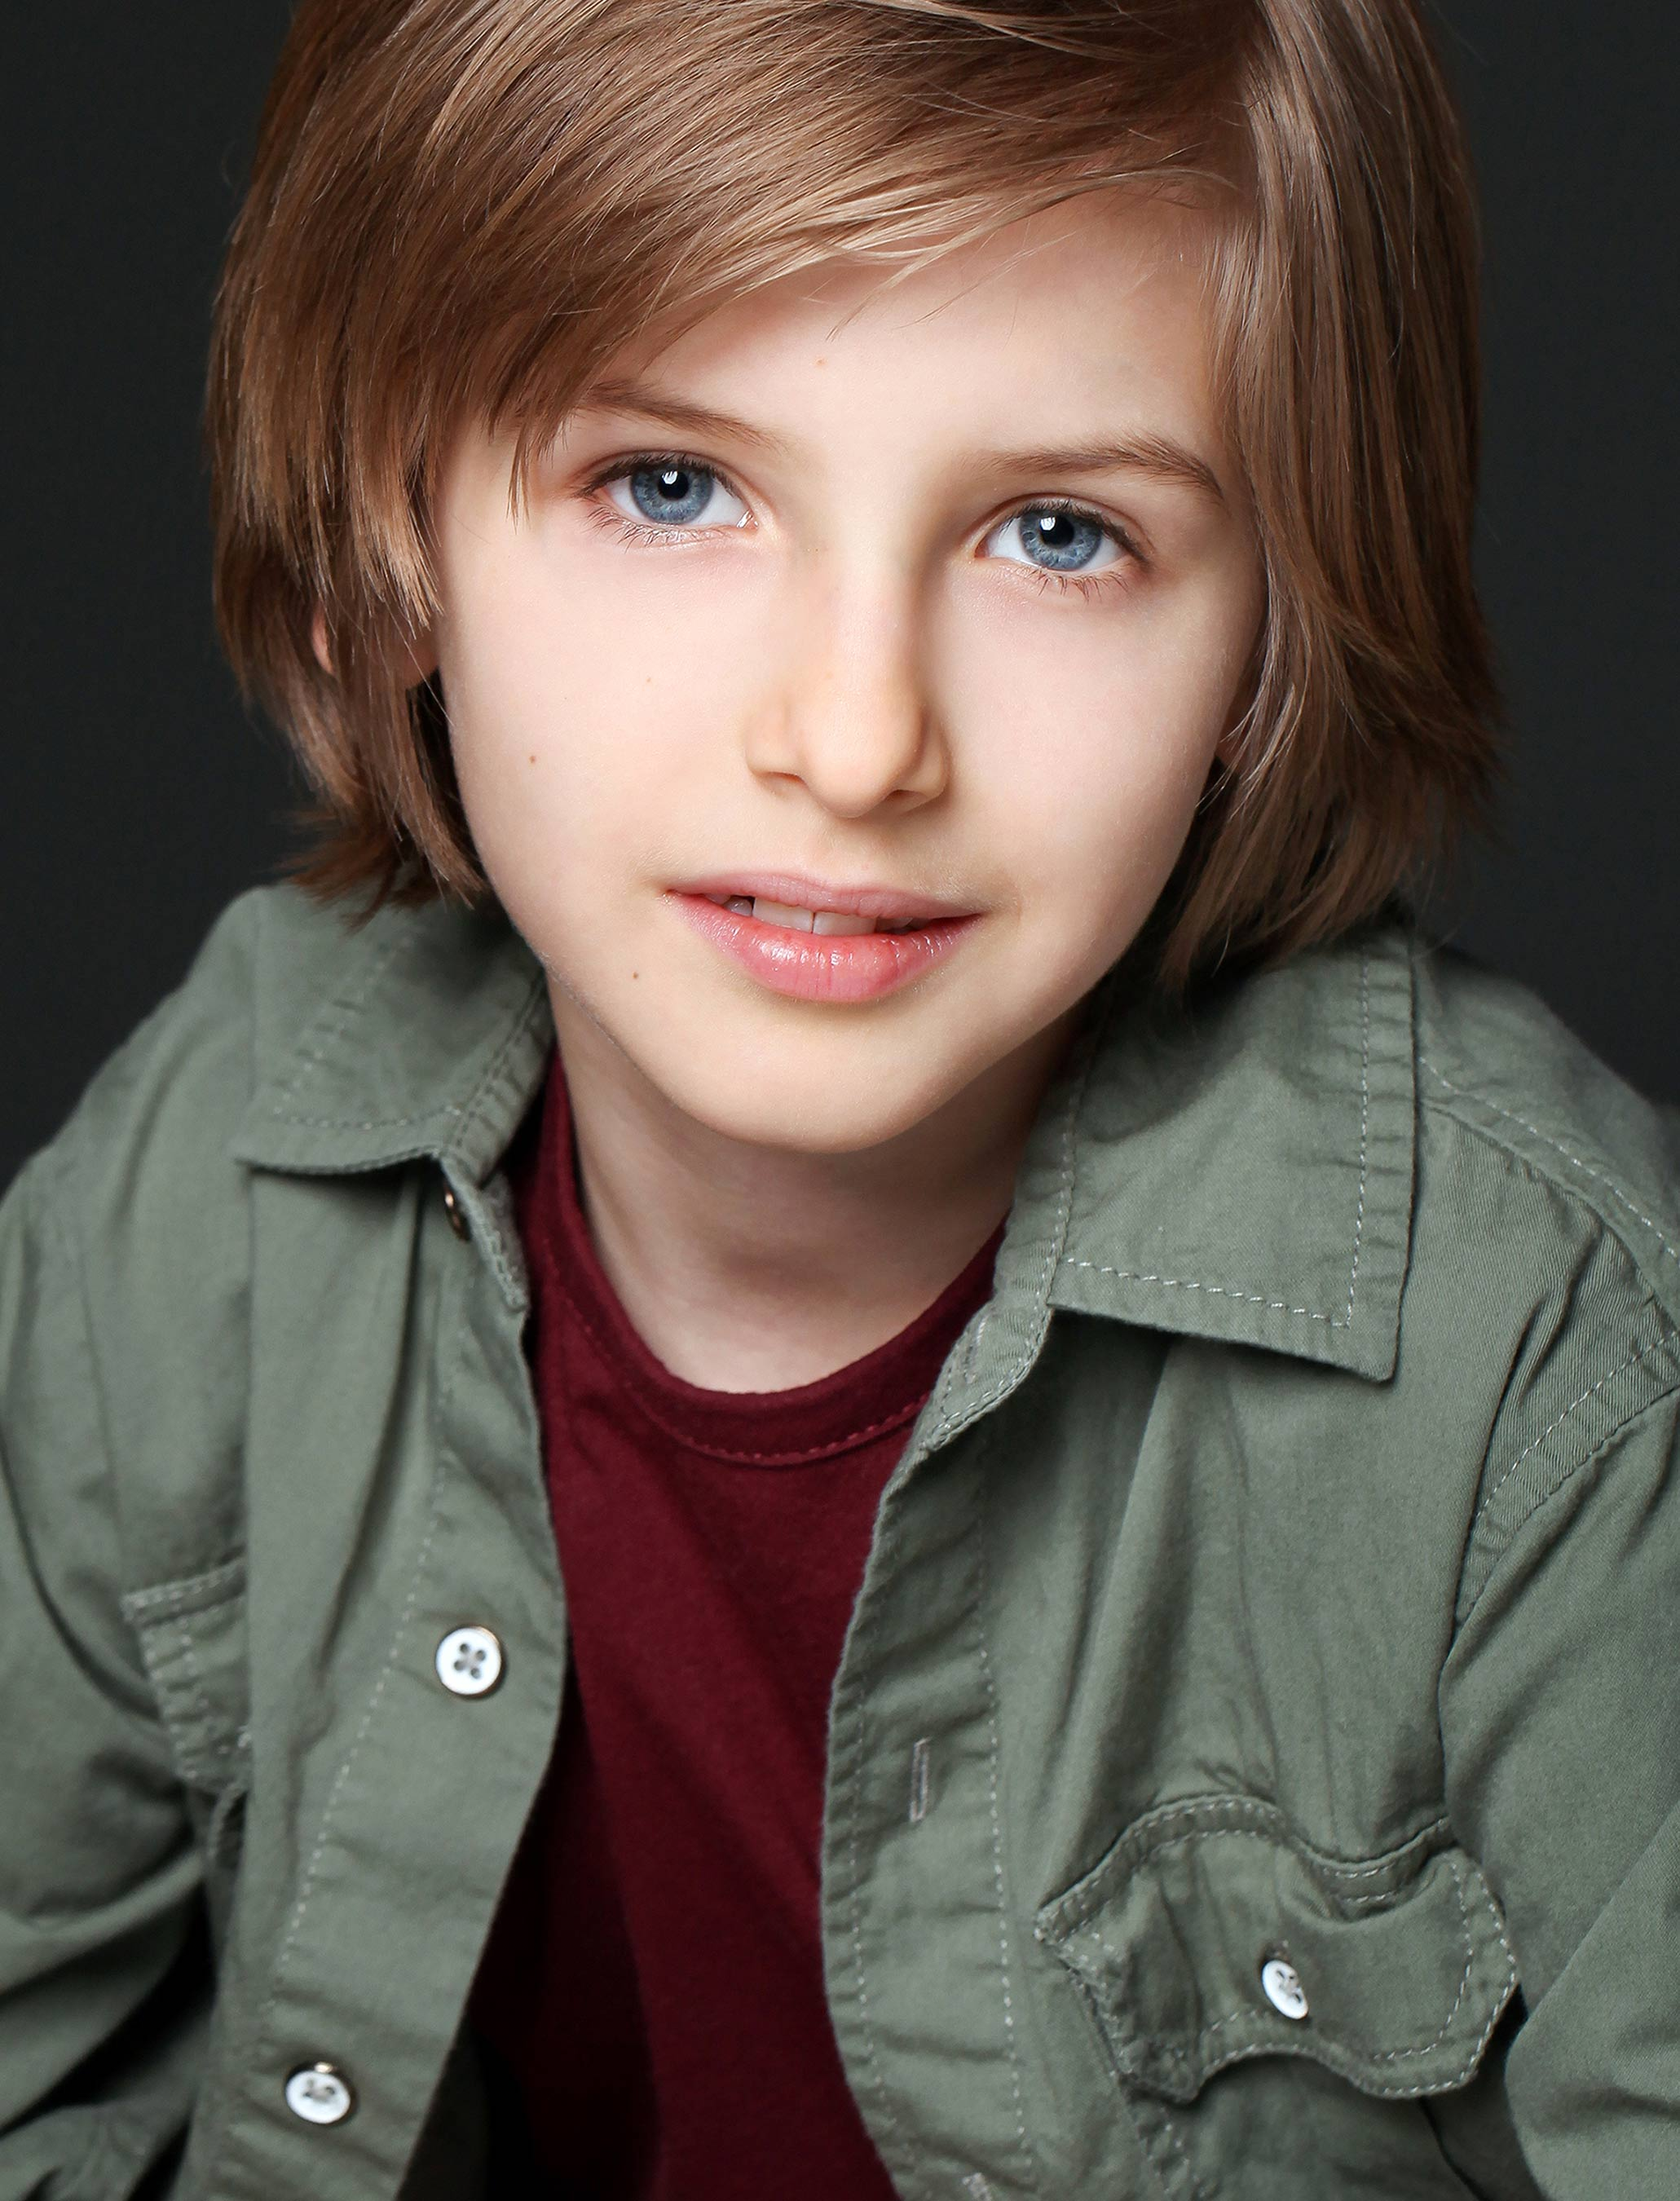 headshots, london ontario, toronto, detroit, actor, personality, celebrity, child actor, Los Angeles, agency, audition headshots